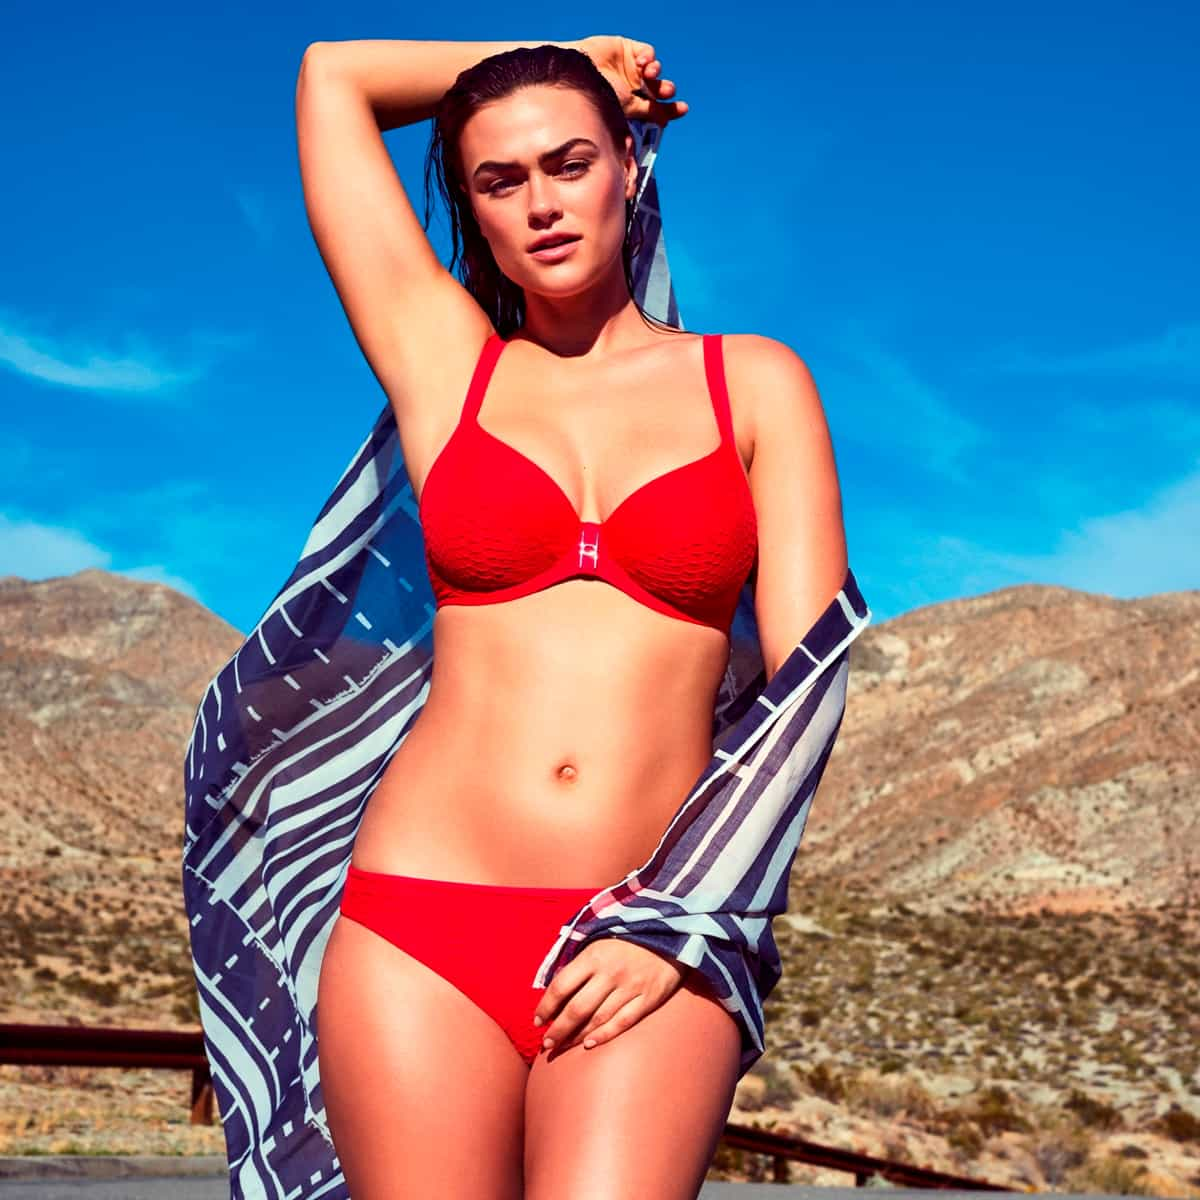 Bikini PrimaDonna Swim 2019 Model Canyon, Farbe True Red